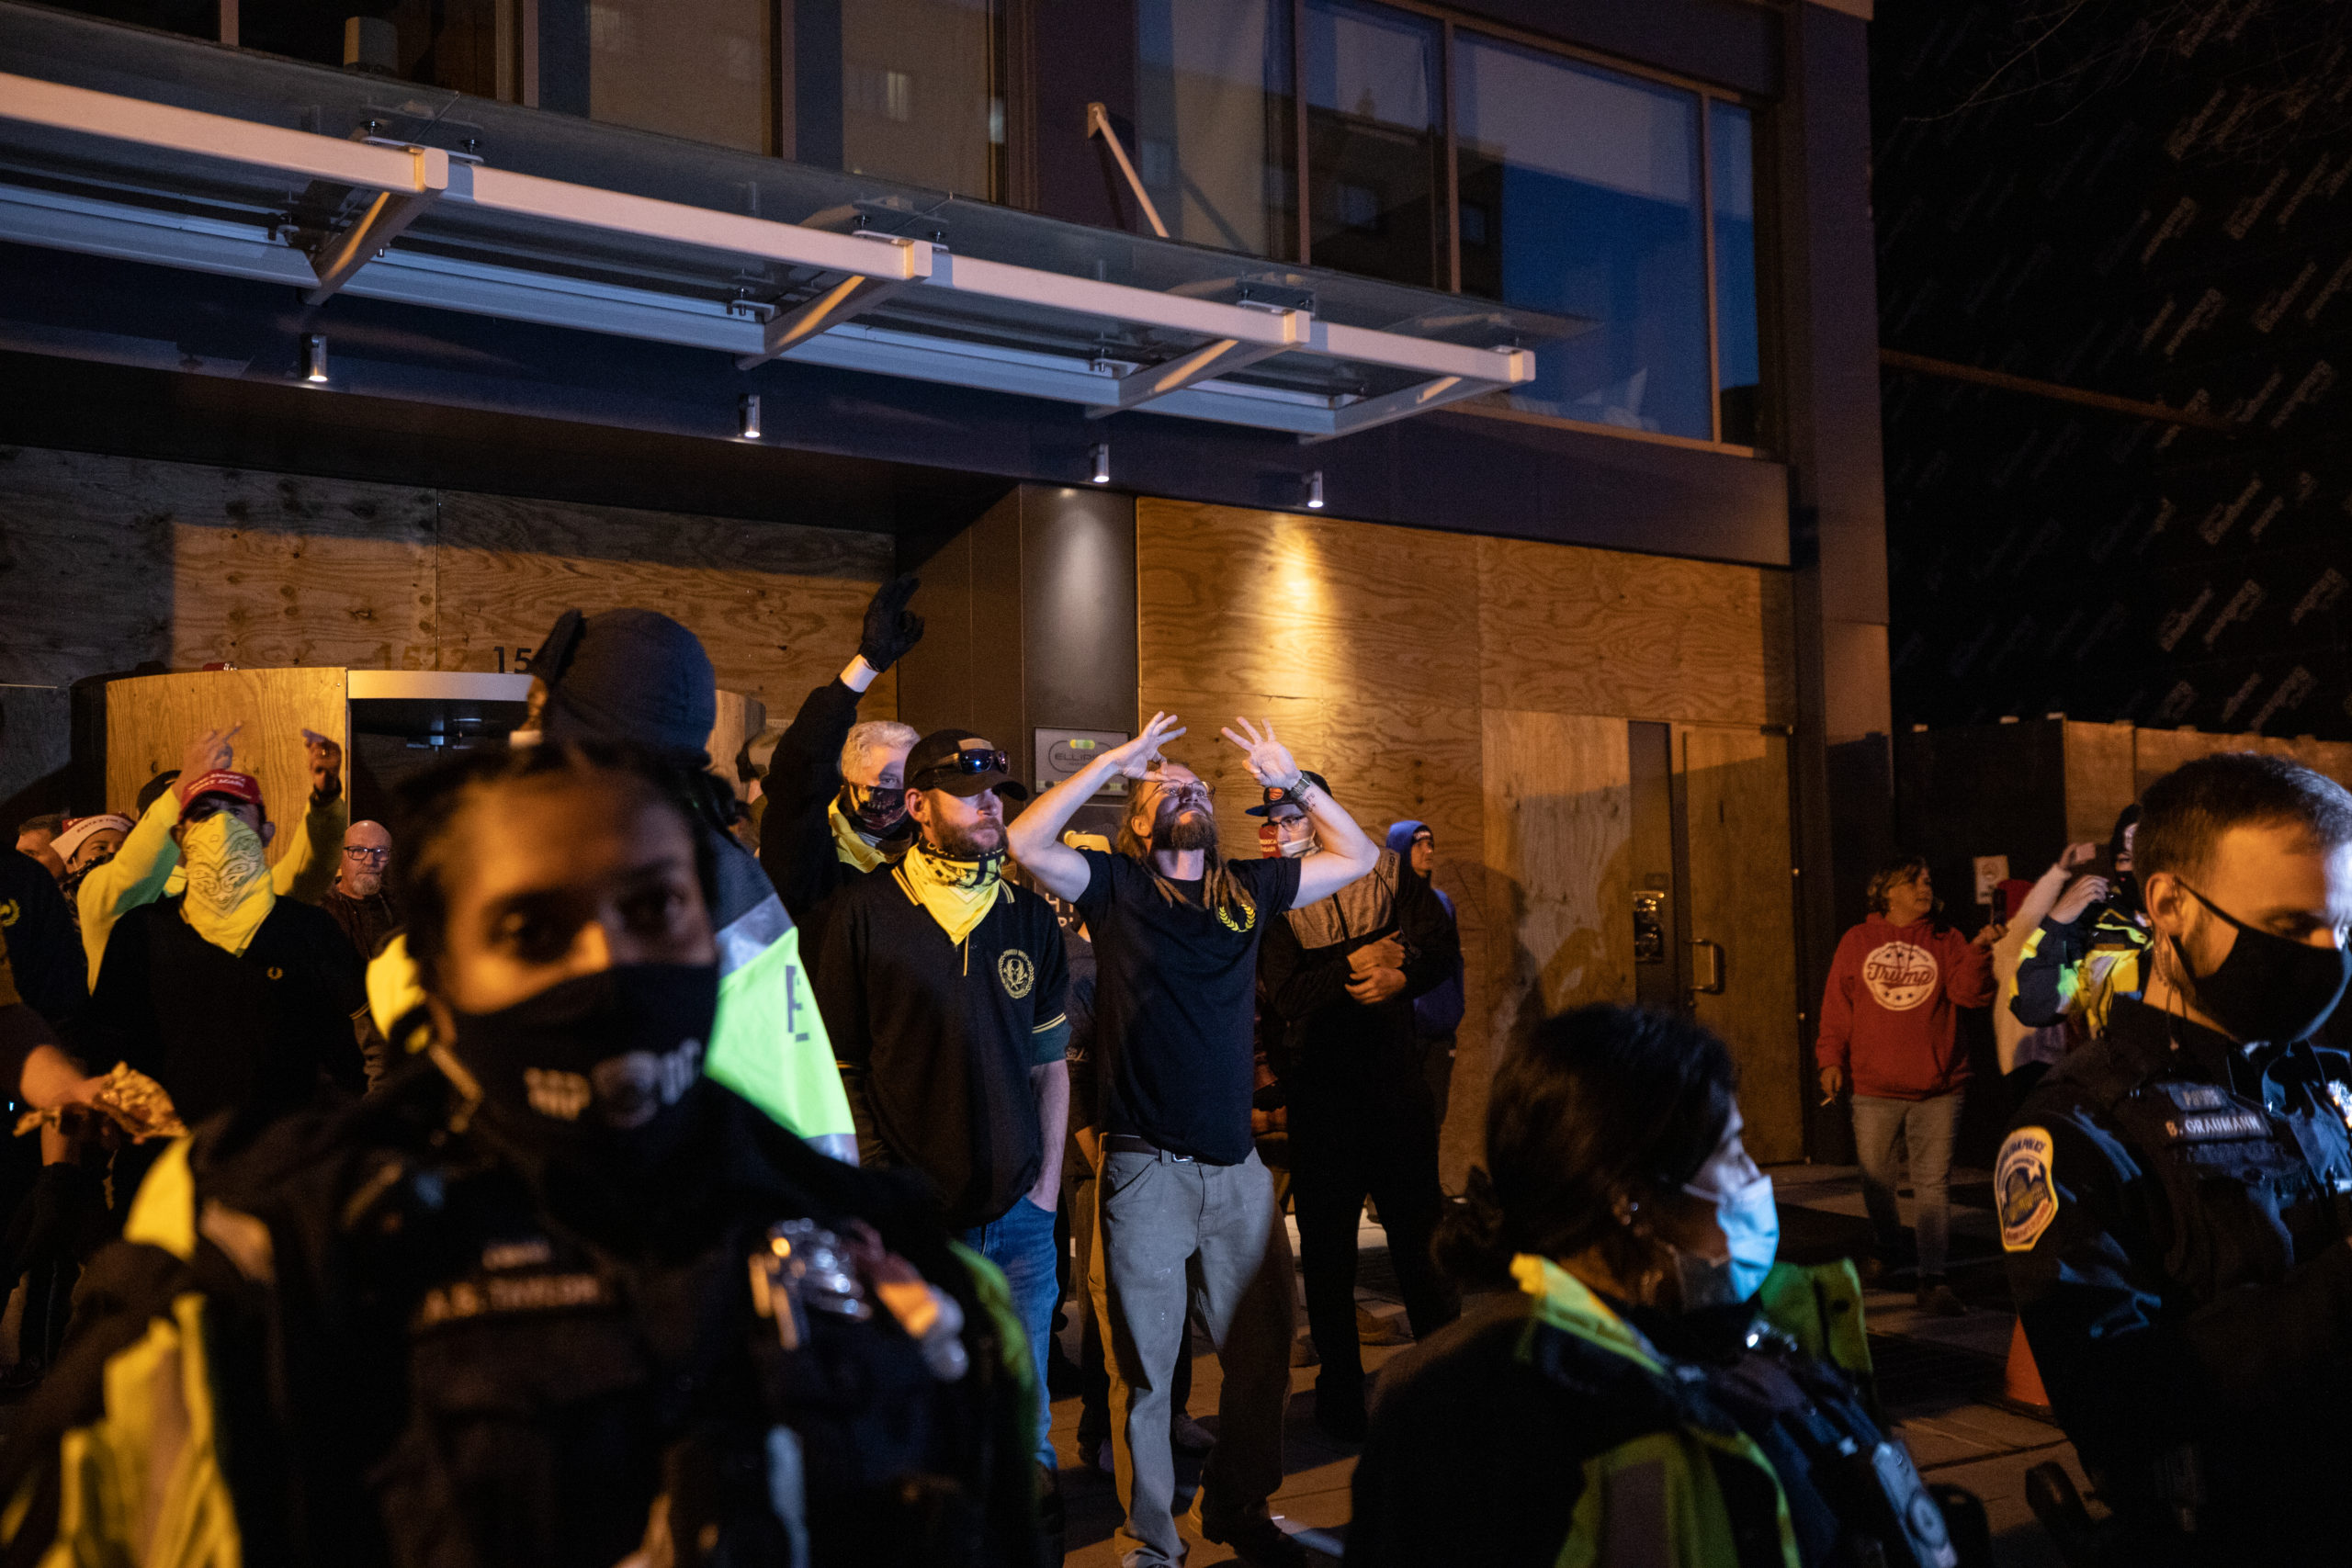 Members of the Proud Boys flashed the white power signs at counter protesters near Black Lives Matter Plaza in Washington, D.C. on Dec. 12, 2020. (Photo: Kaylee Greenlee - Daily Caller News Foundation)